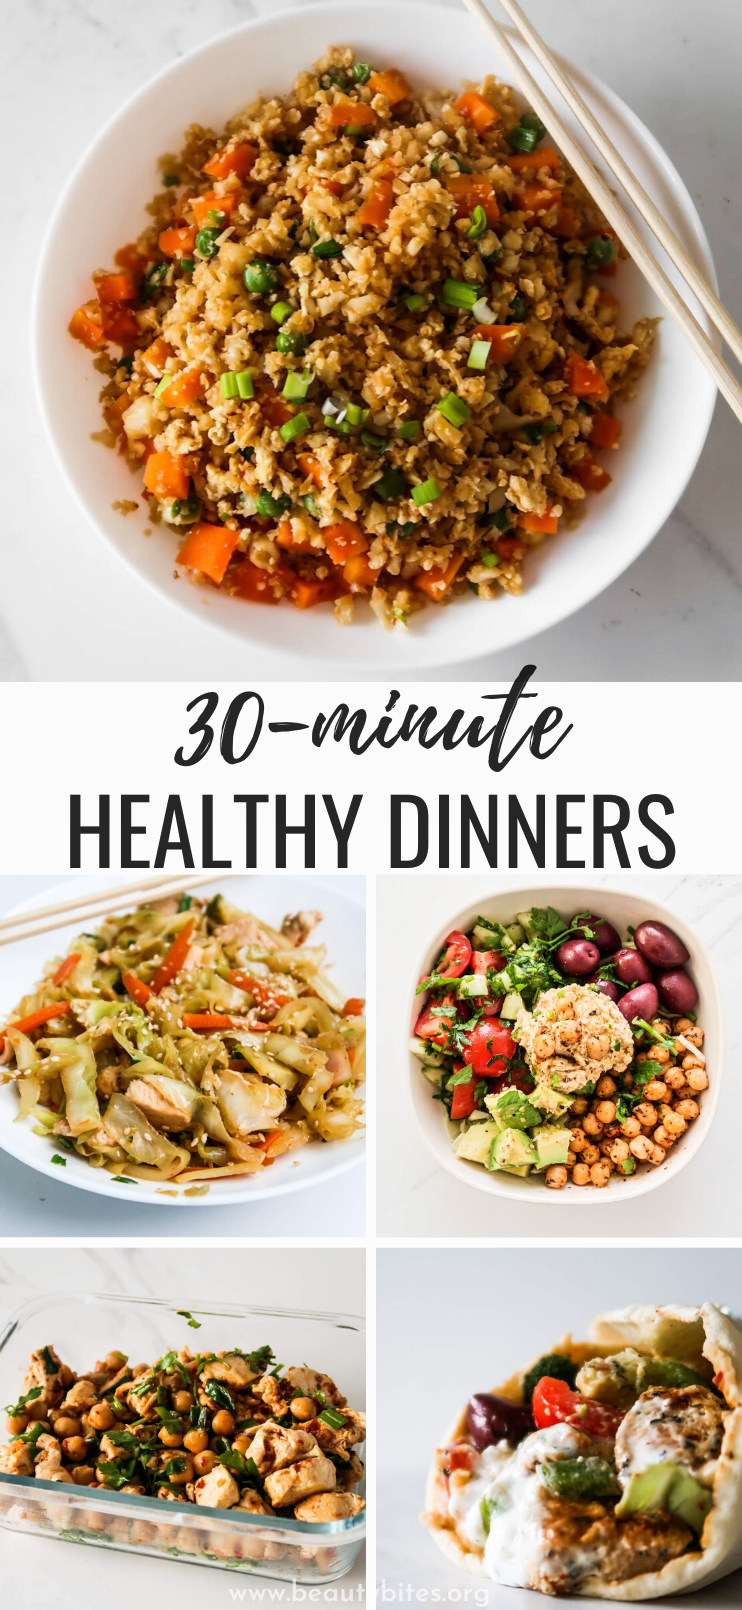 Looking for some easy healthy dinner recipes that aren't chicken with broccoli? These healthy meal ideas will help you get your clean eating dinner ready in less than 30 minutes. This list features healthy chicken recipes, easy seafood and salmon recipes, healthy fried rice options, healthy Mediterranean diet recipes, healthy ground beef recipes and delicious vegetarian and vegan dinner recipes!